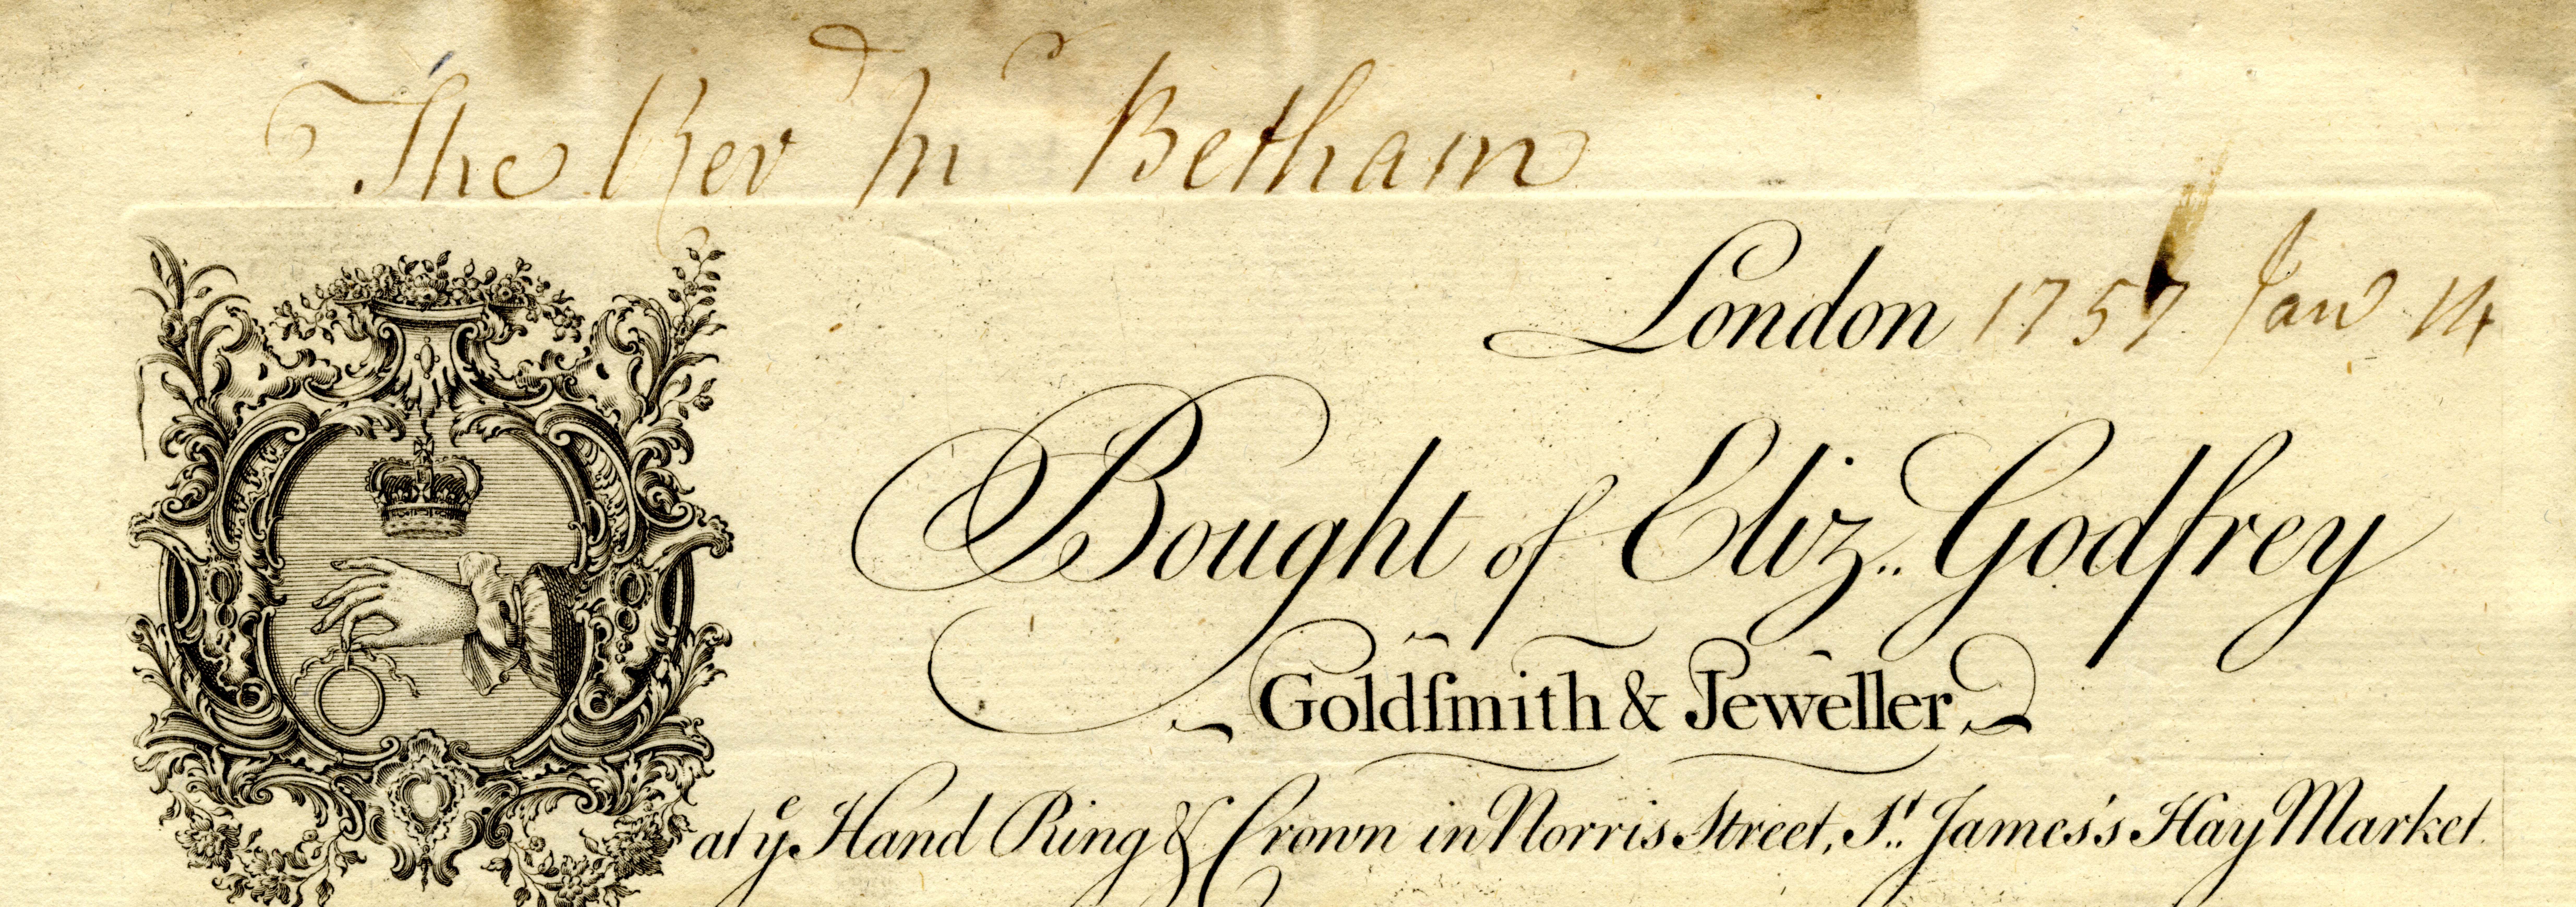 Receipt for engraving six coats of arms and inscriptions, 1757.